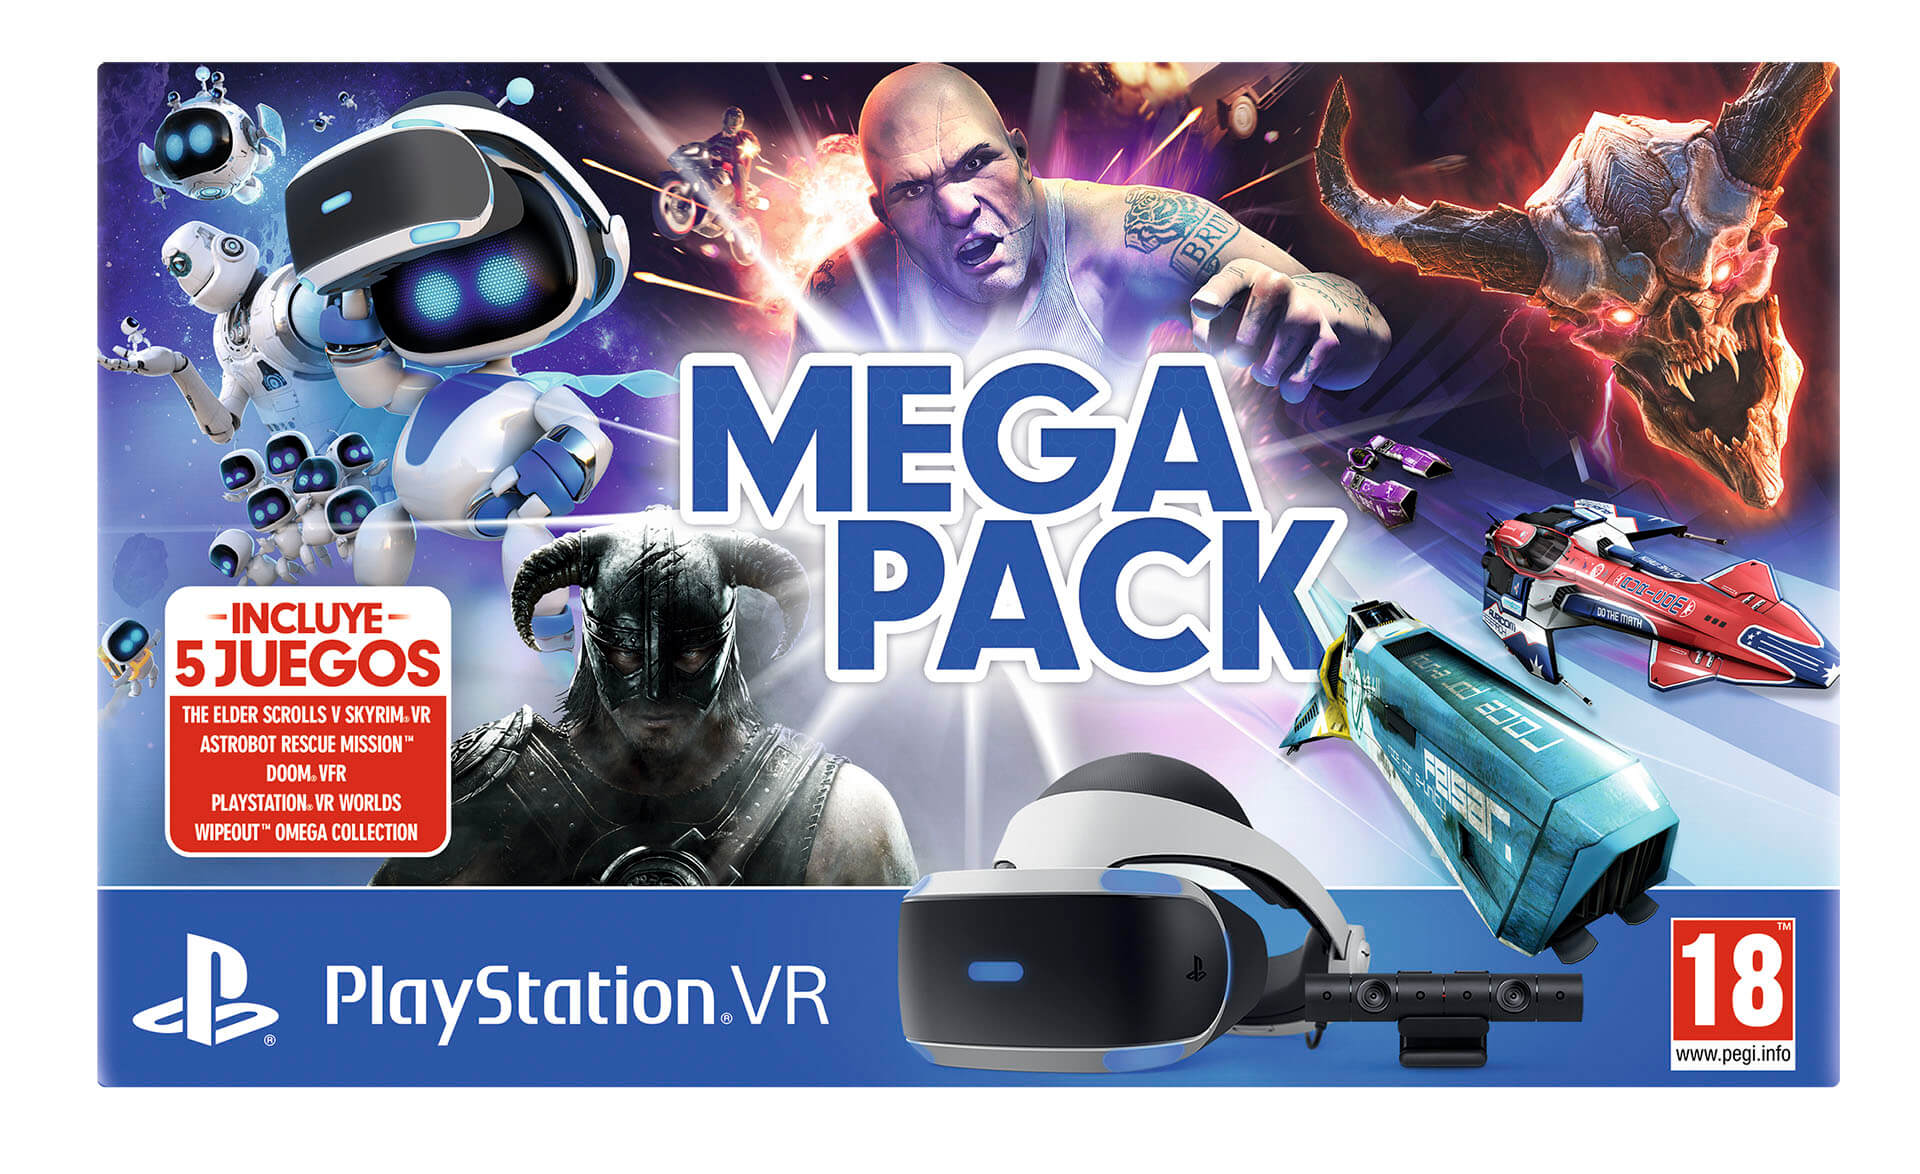 PS VR Mega Pack